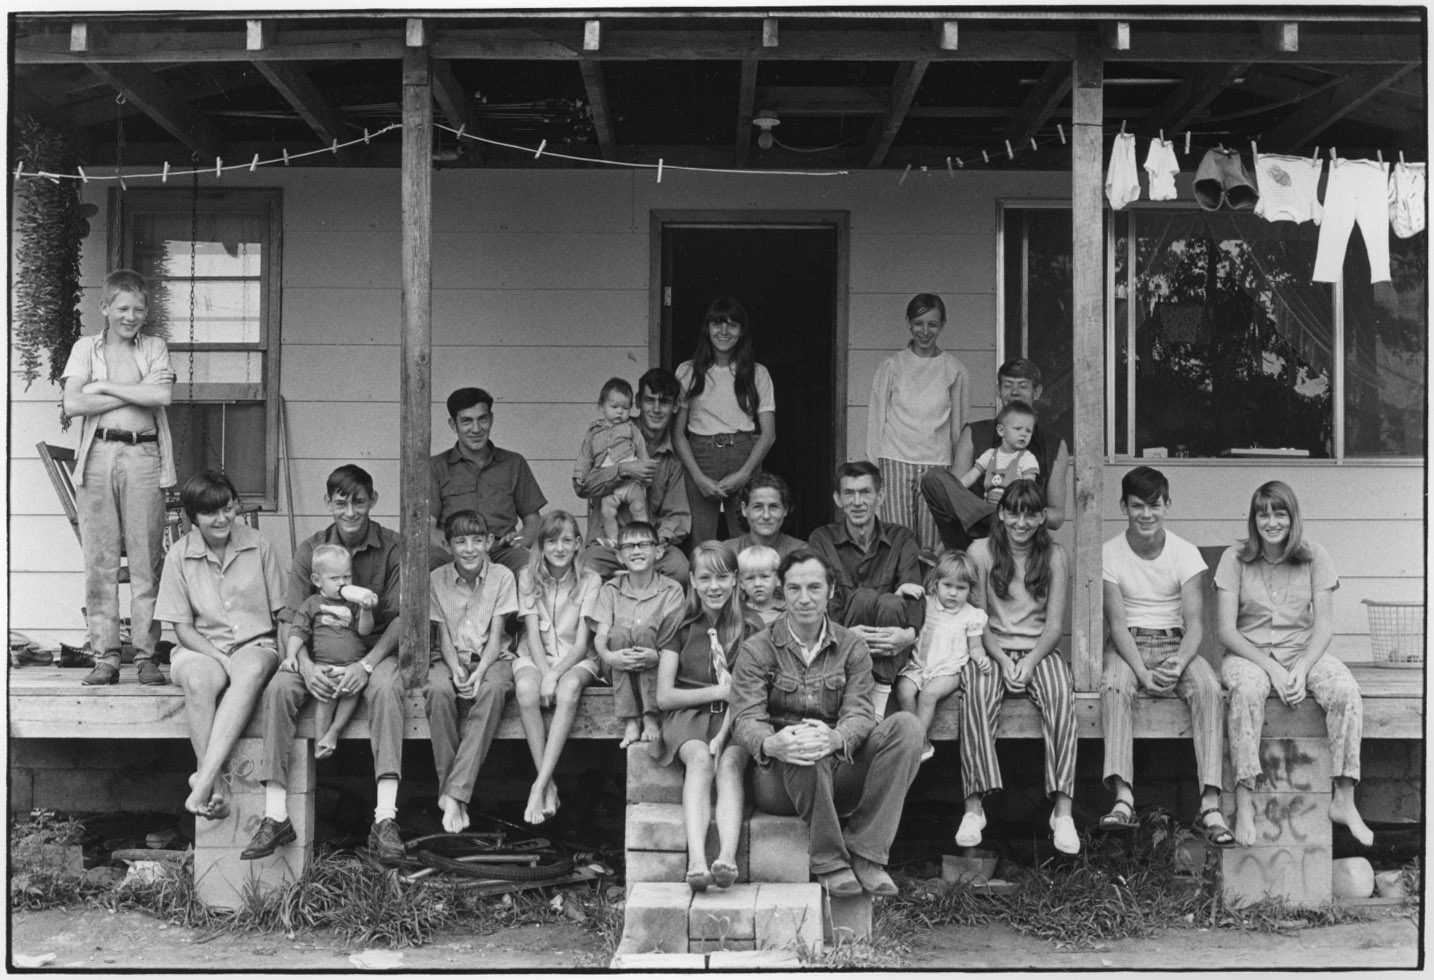 """Willie and Vivian Cornett, children and grandchildren, and William Gedney on porch"" - William Gedney, 1972"